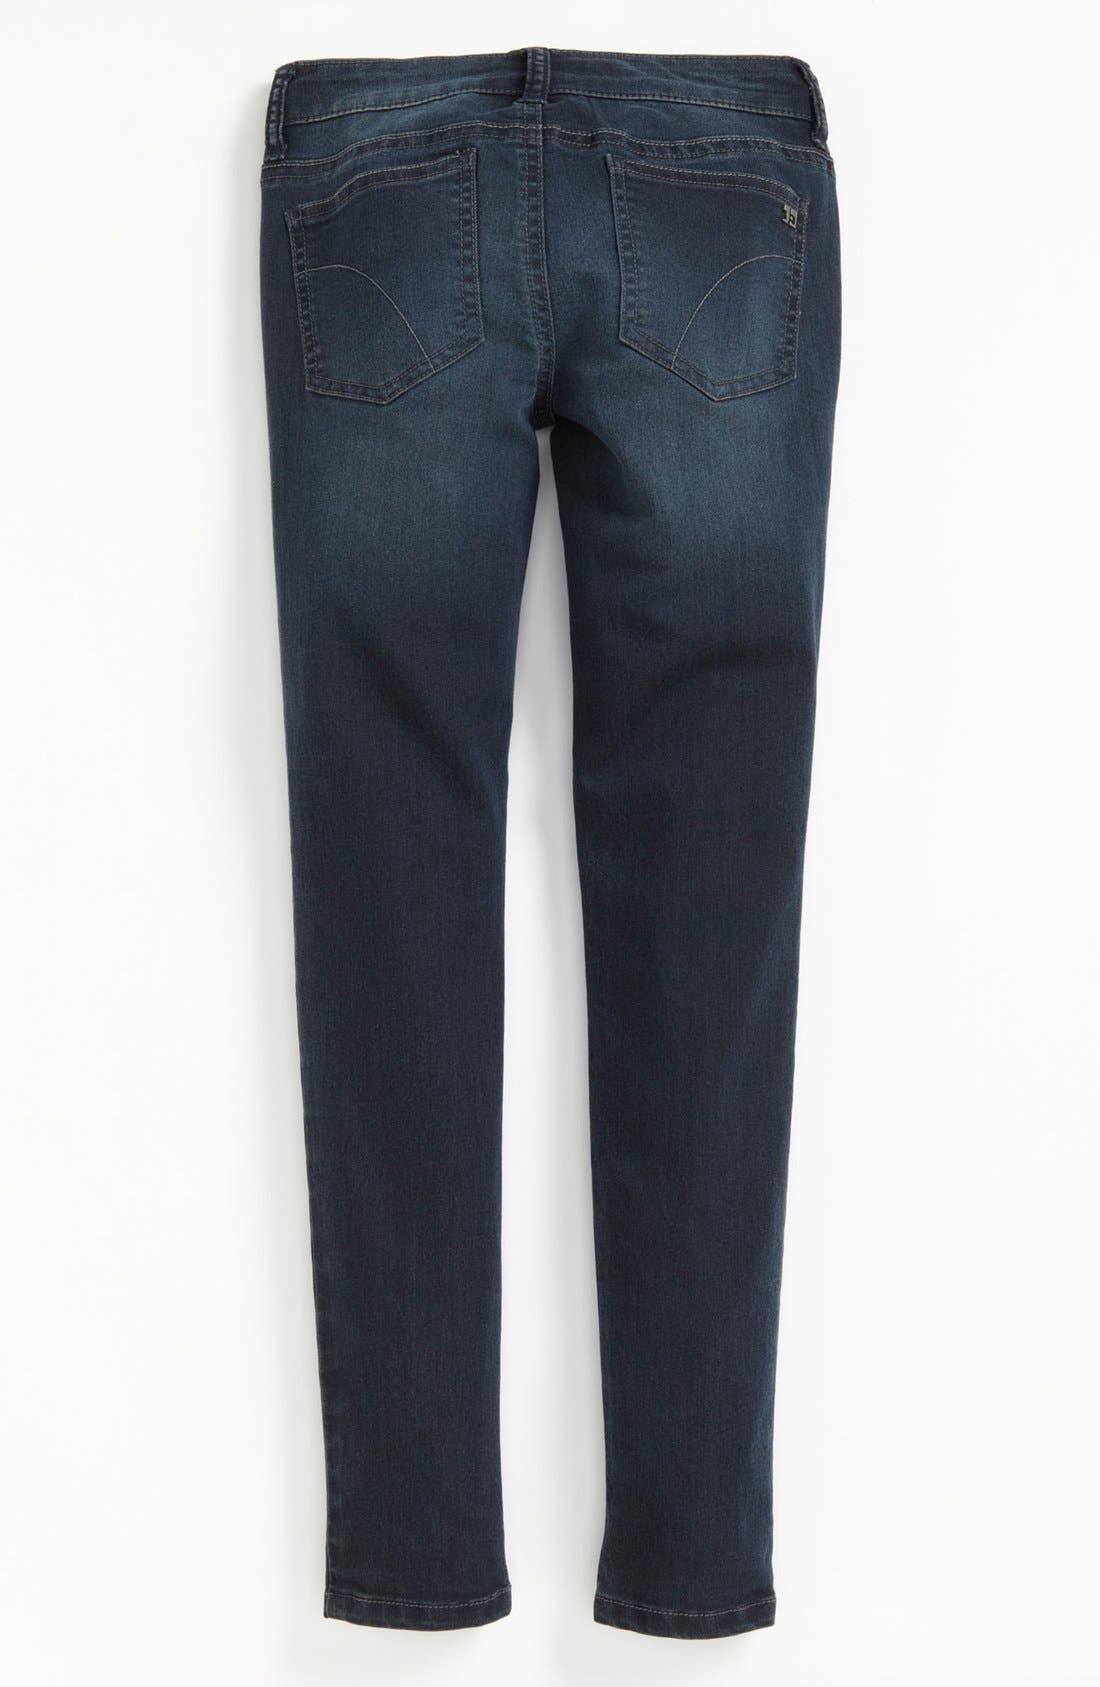 Main Image - Joe's 'Ryan' Skinny Jeans (Big Girls)